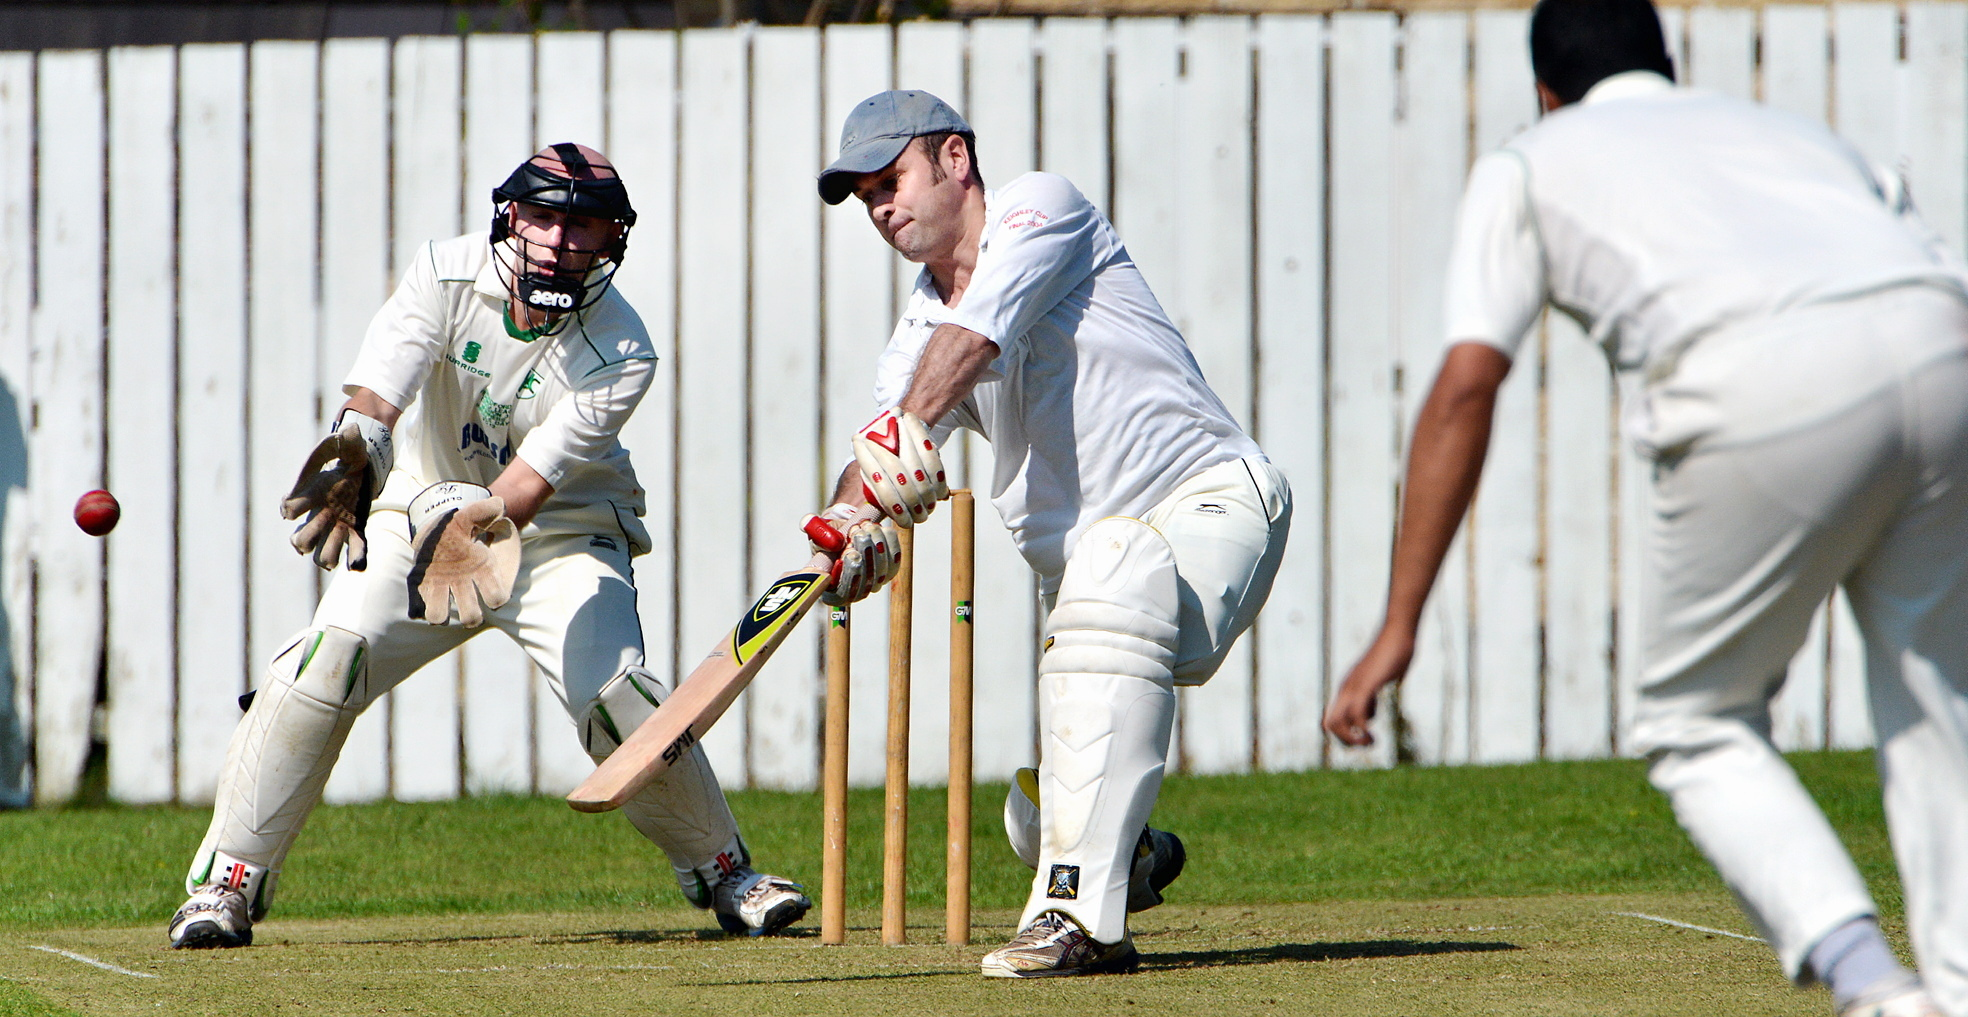 Chris Brown, seen keeping wicket, scored 54 for Wibsey Park Chapel